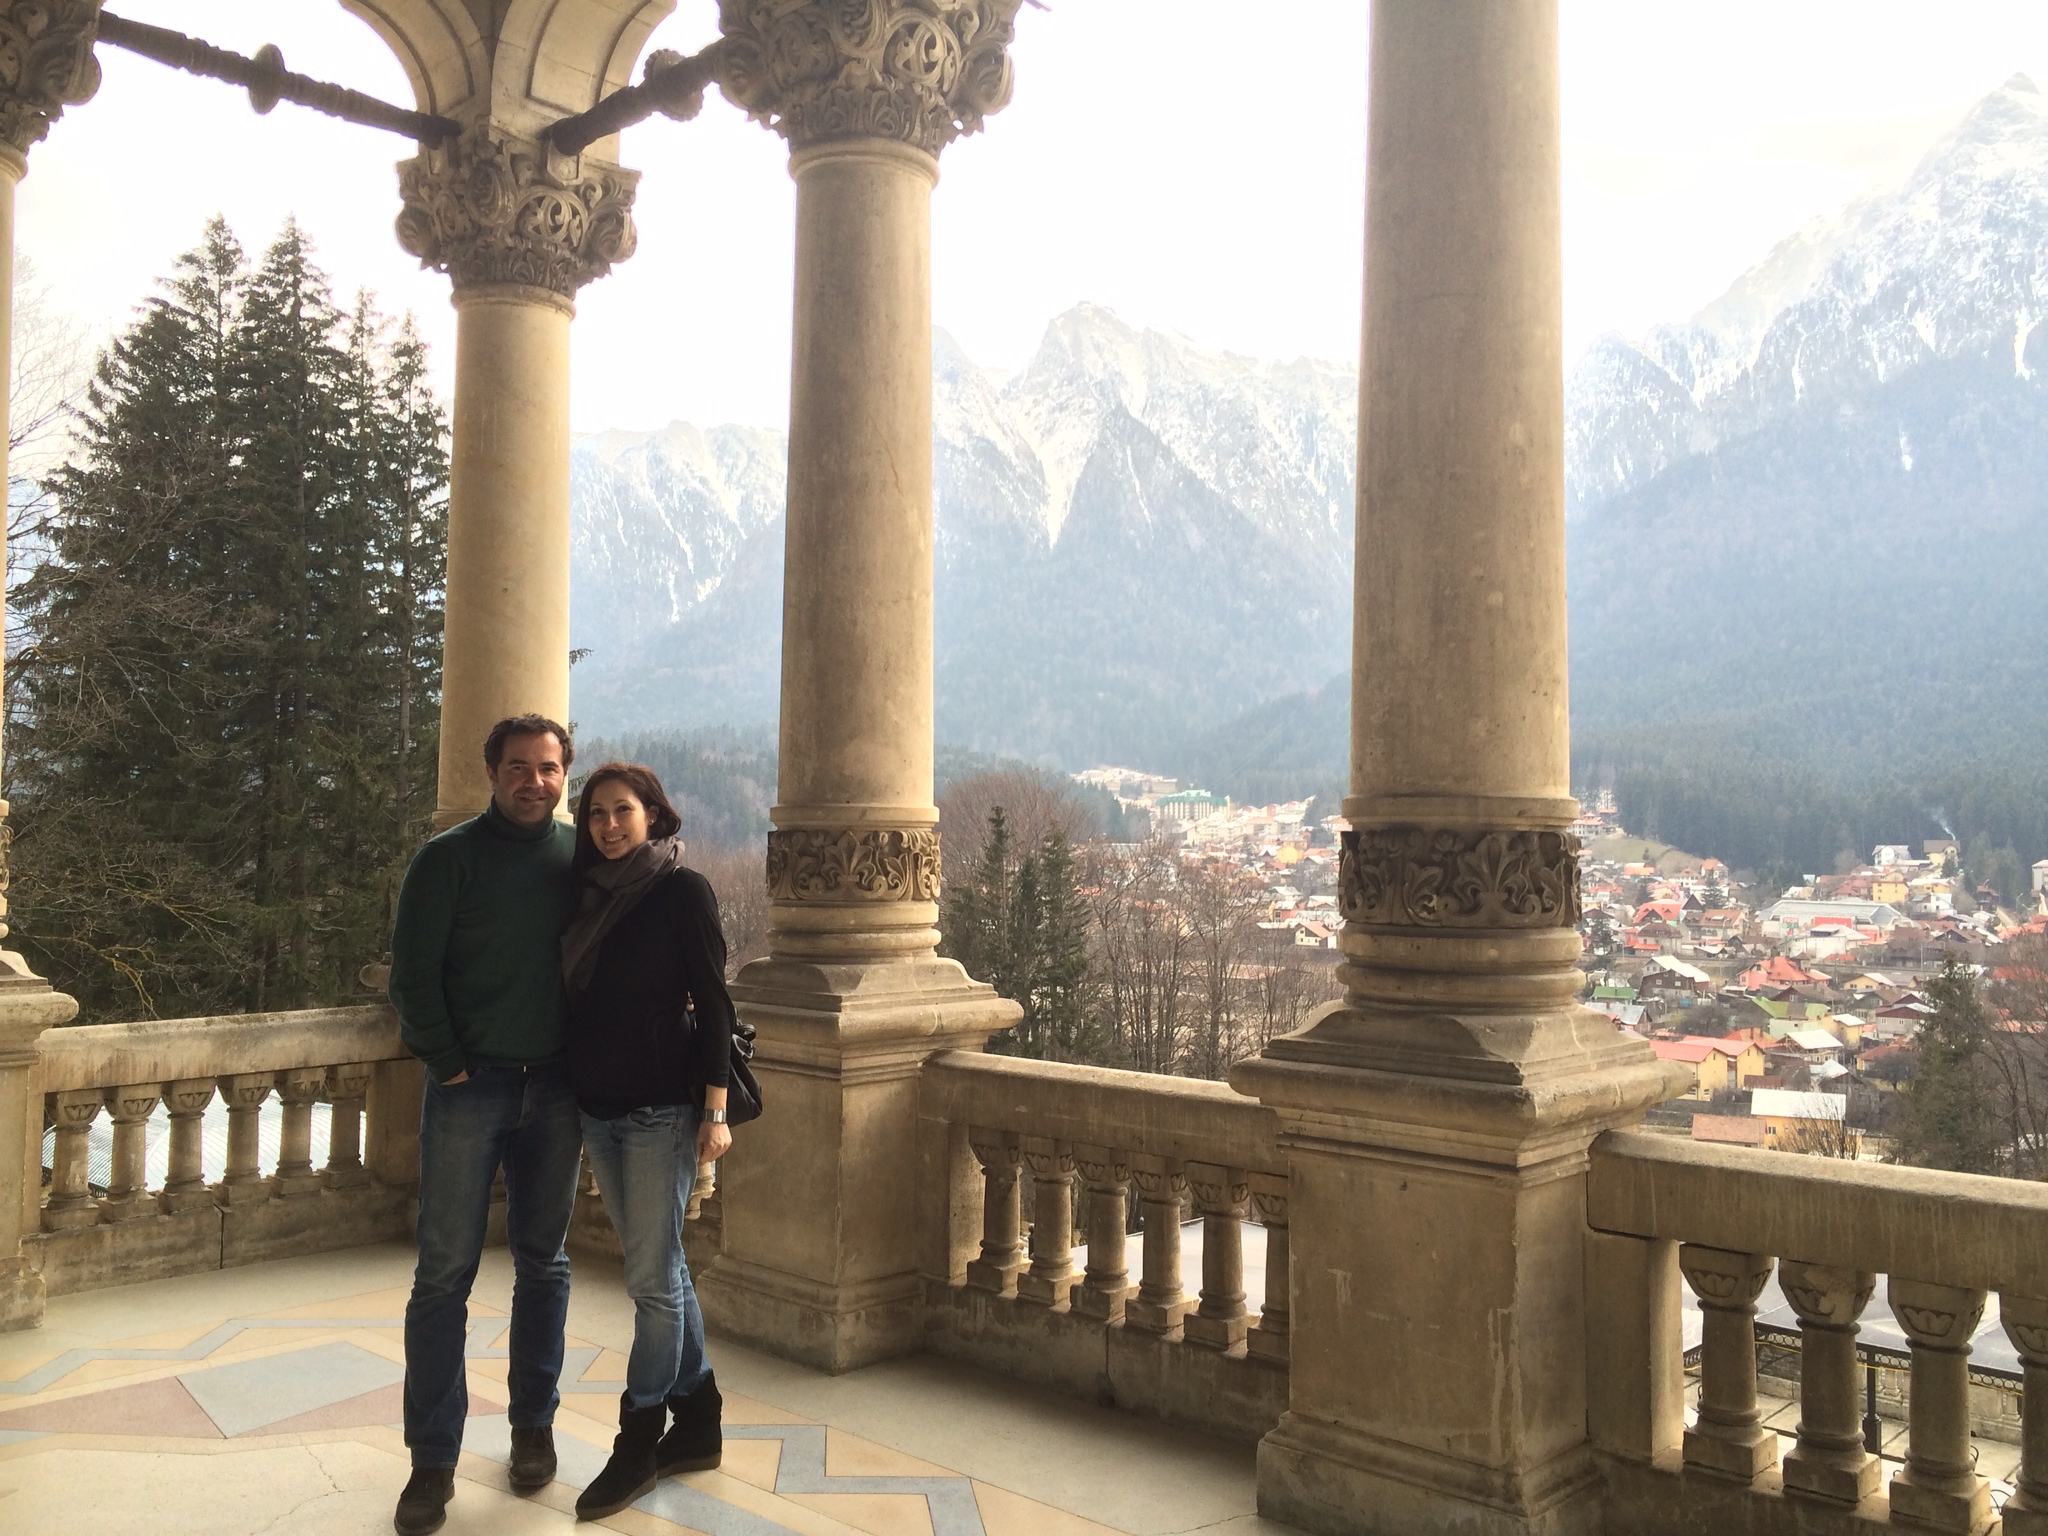 A sumptuous Sunday lunch at CANTACUZINO Castle